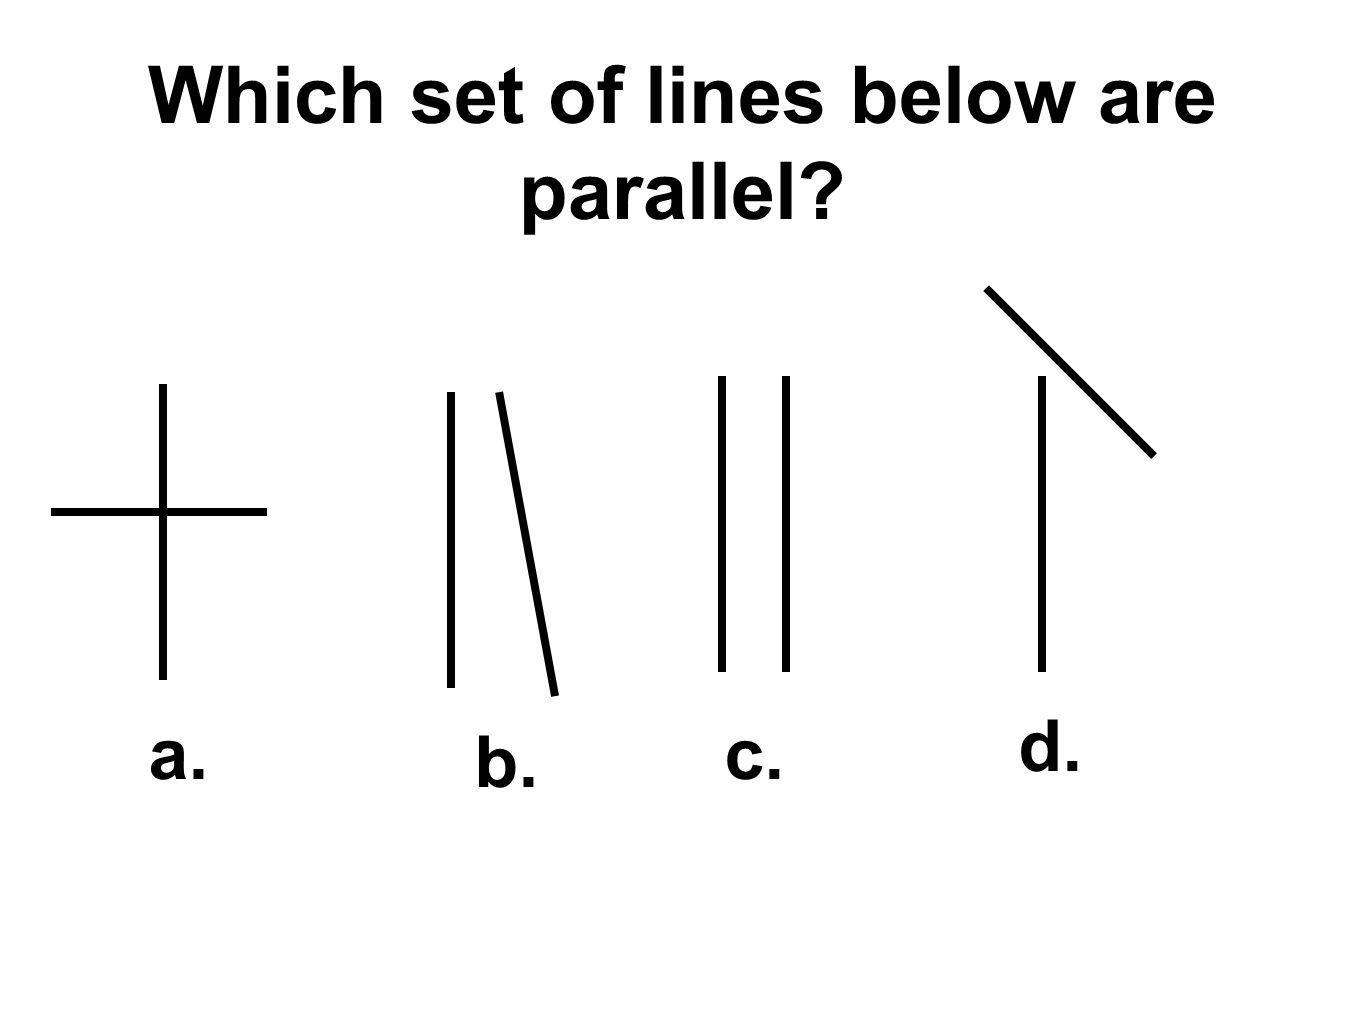 Which set of lines below are parallel